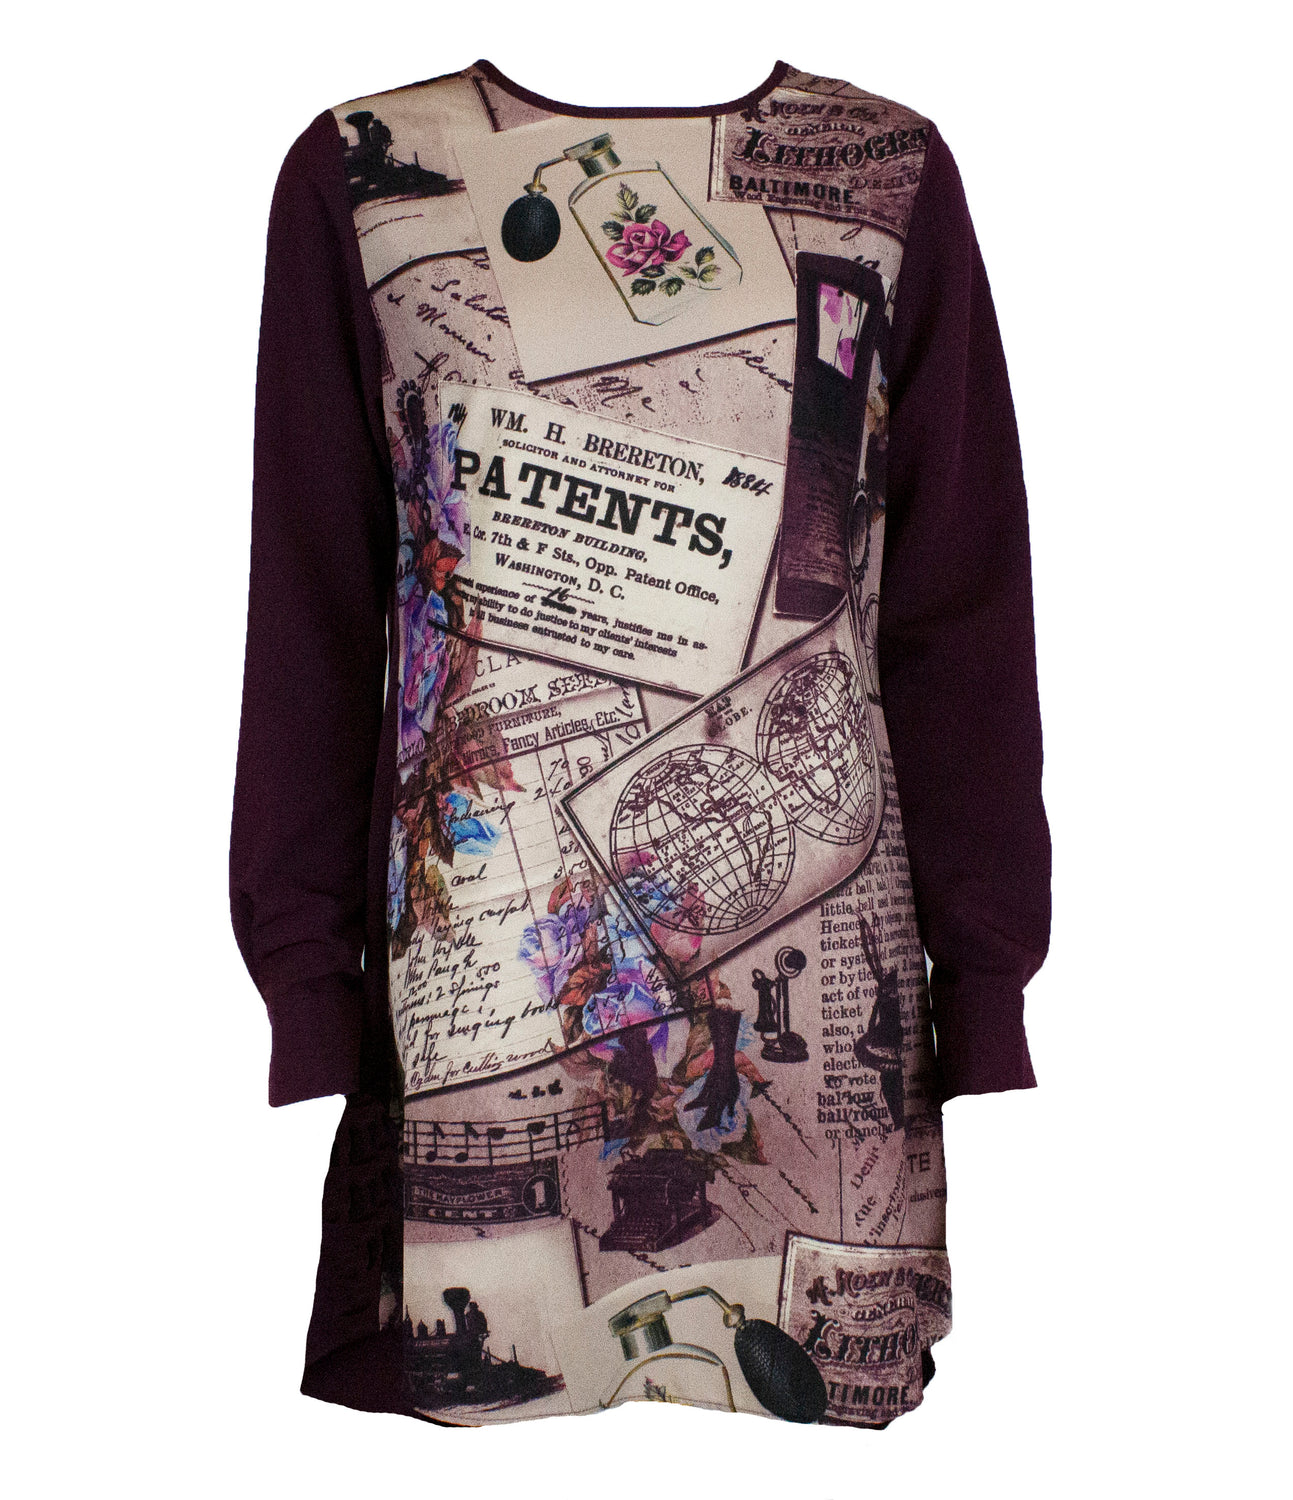 Mixed printed top with a solid back and solid colored sleeves in burgundy